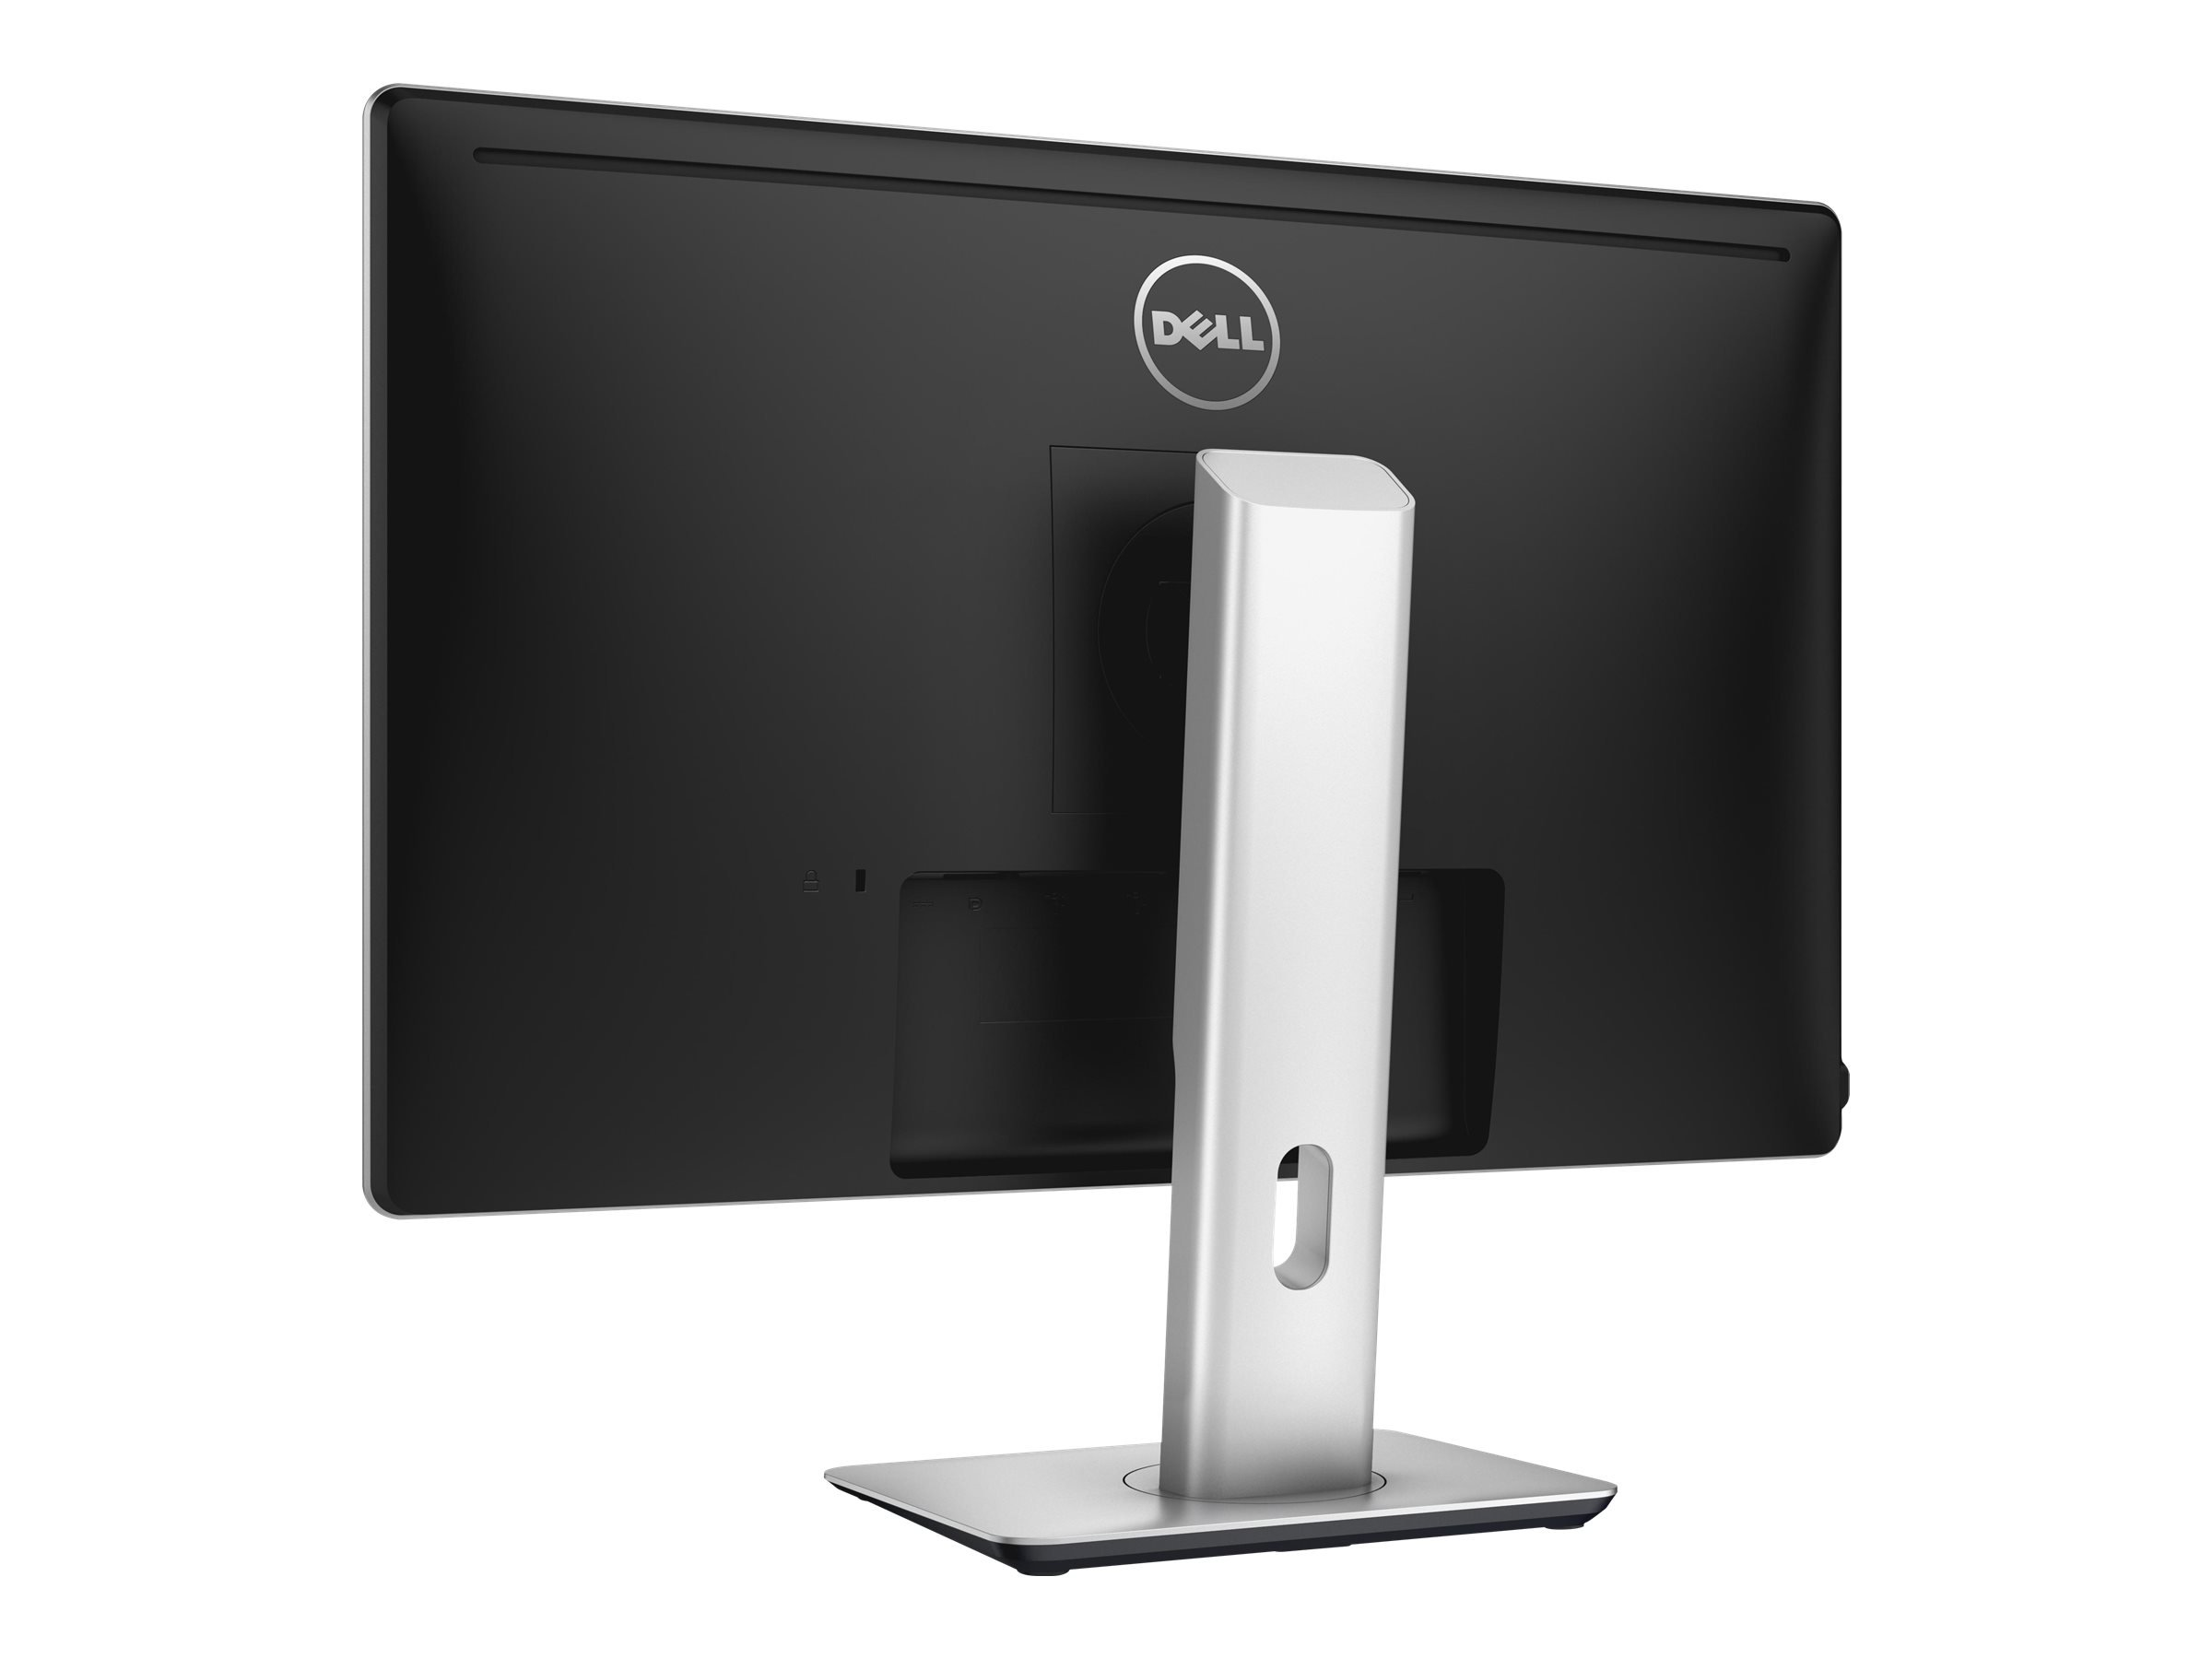 Dell Ultrasharp UZ2315H 23-Inch Screen LED-Lit Full HD Monitor with Webcam and Speakers by Dell (Image #7)